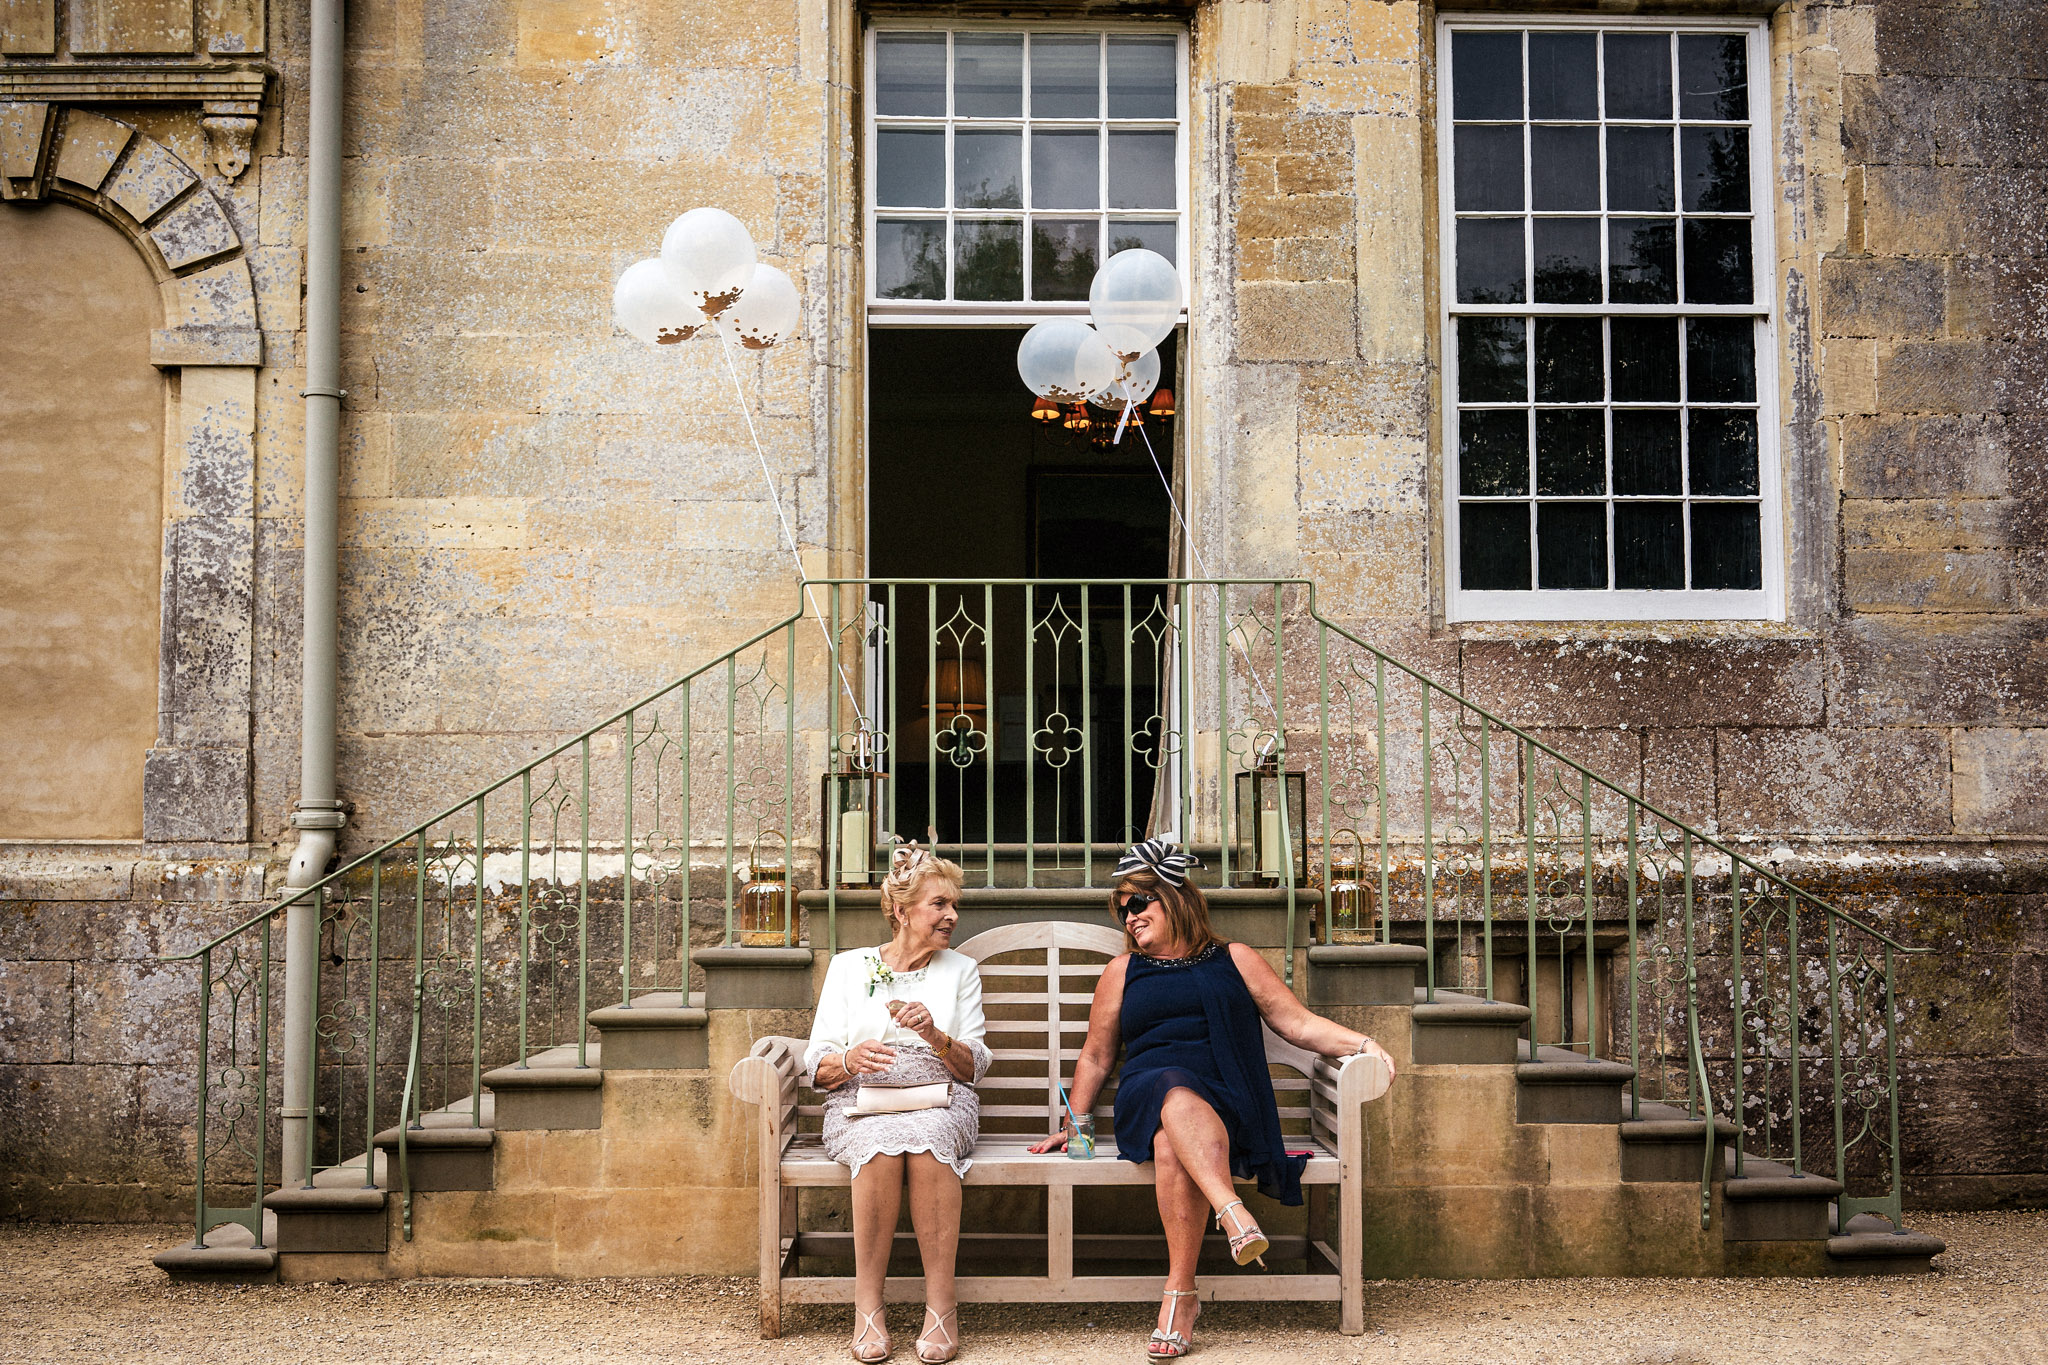 Ladies chatting on bench - photo by Andrew Billington Photography